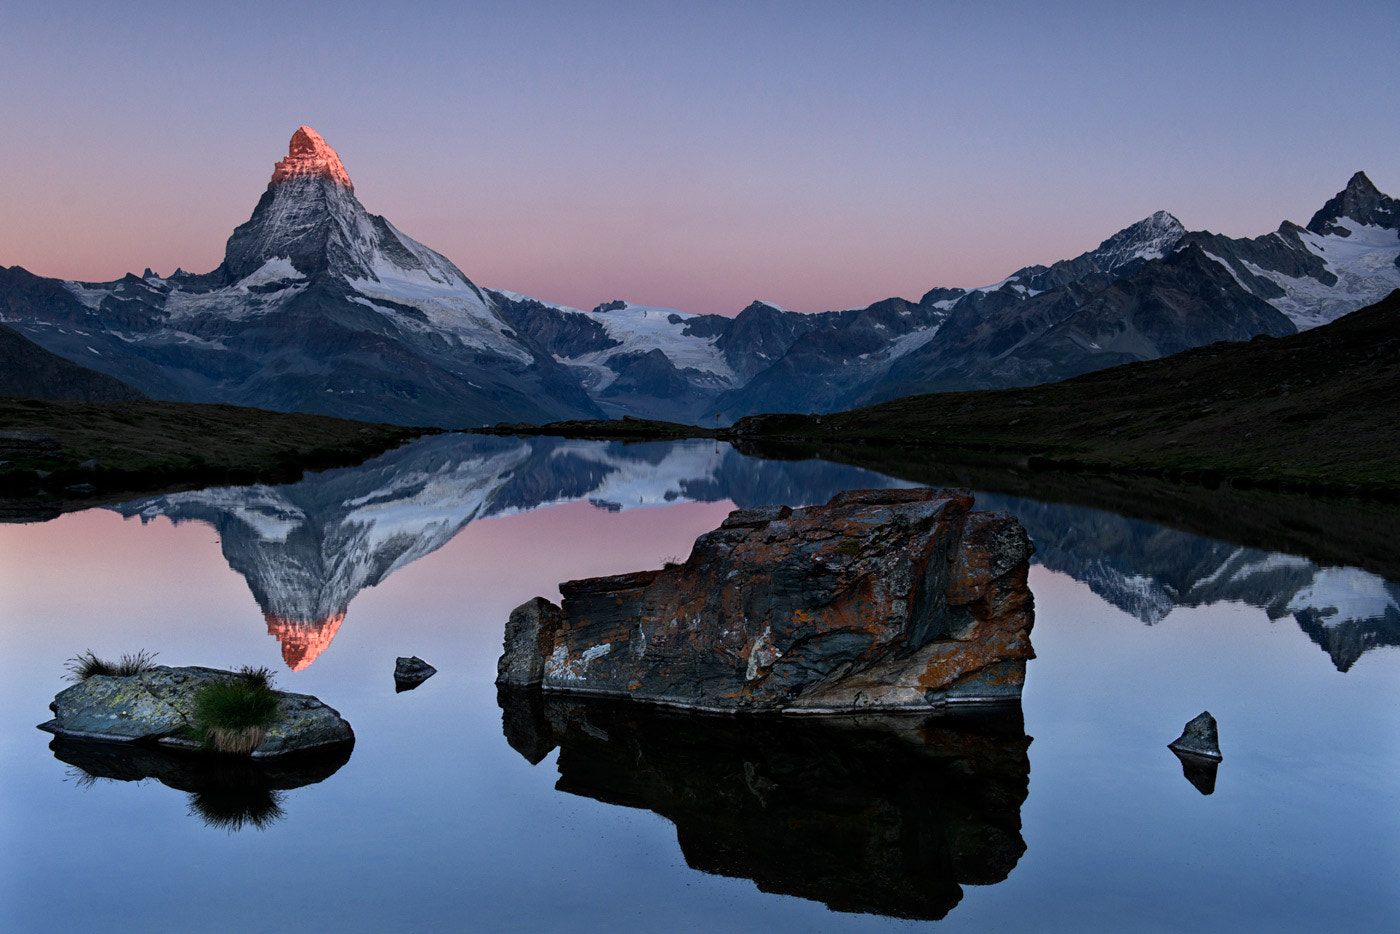 Photograph Pure Swissness by Dominik Orth on 500px